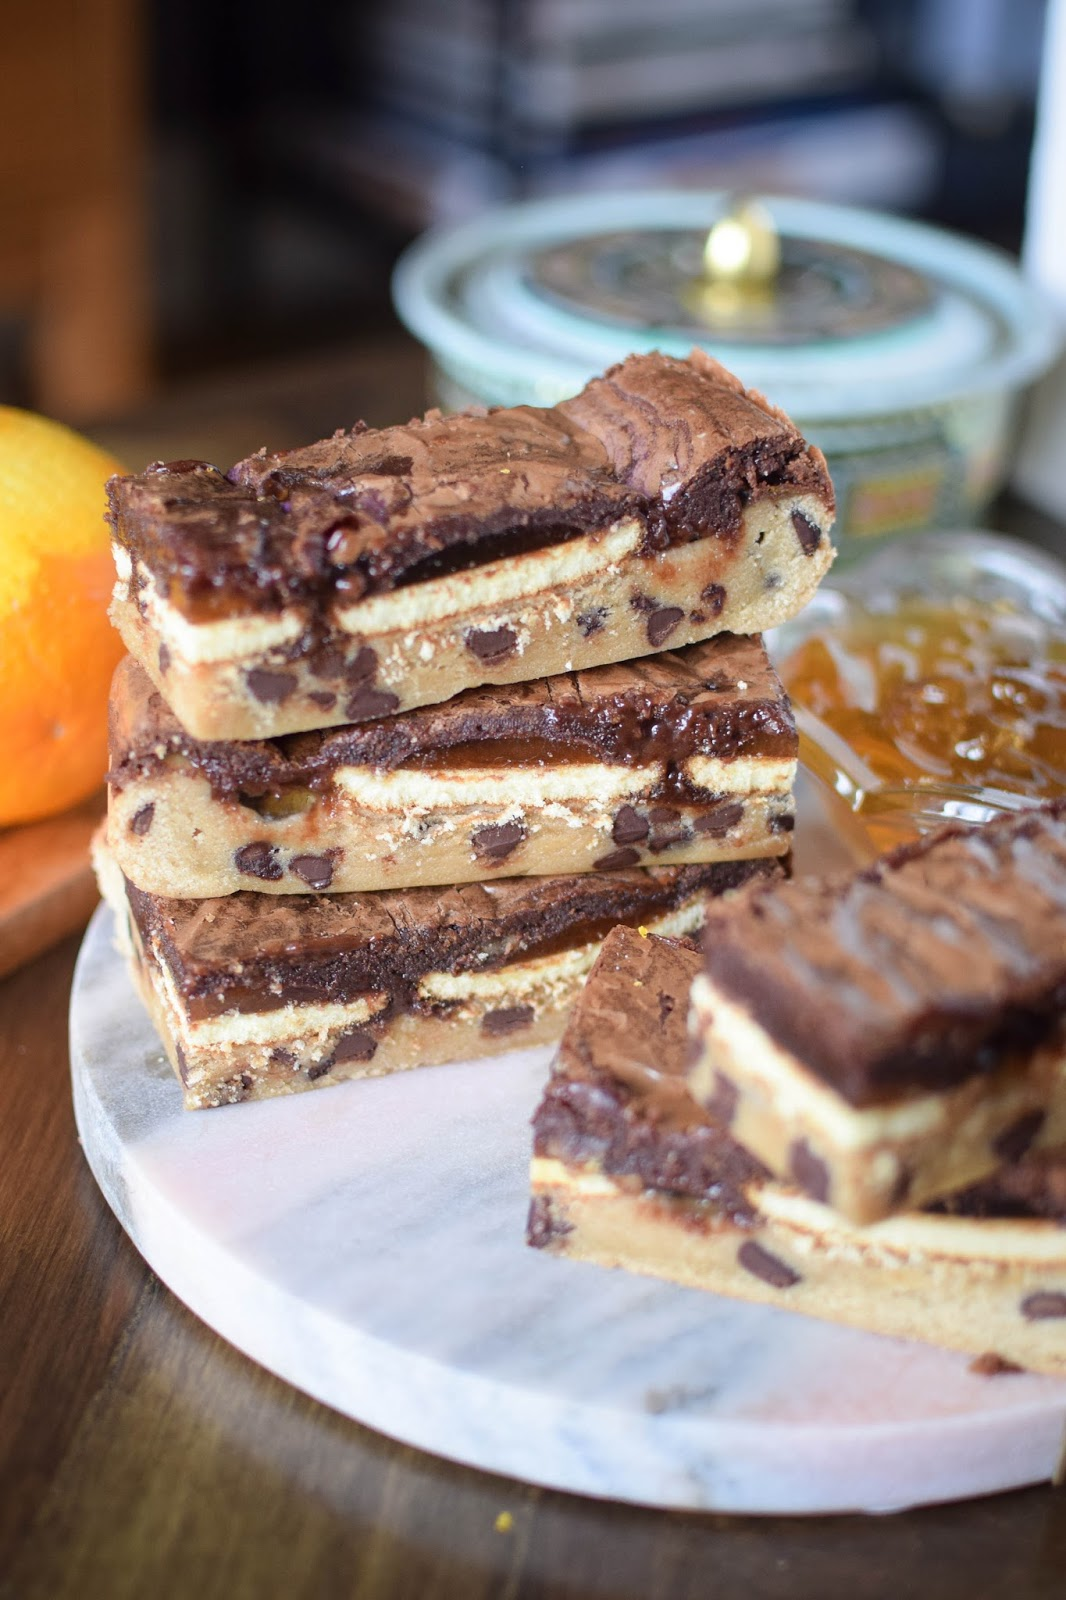 Chocolate Orange Jaffa Cake Slutty Brownies